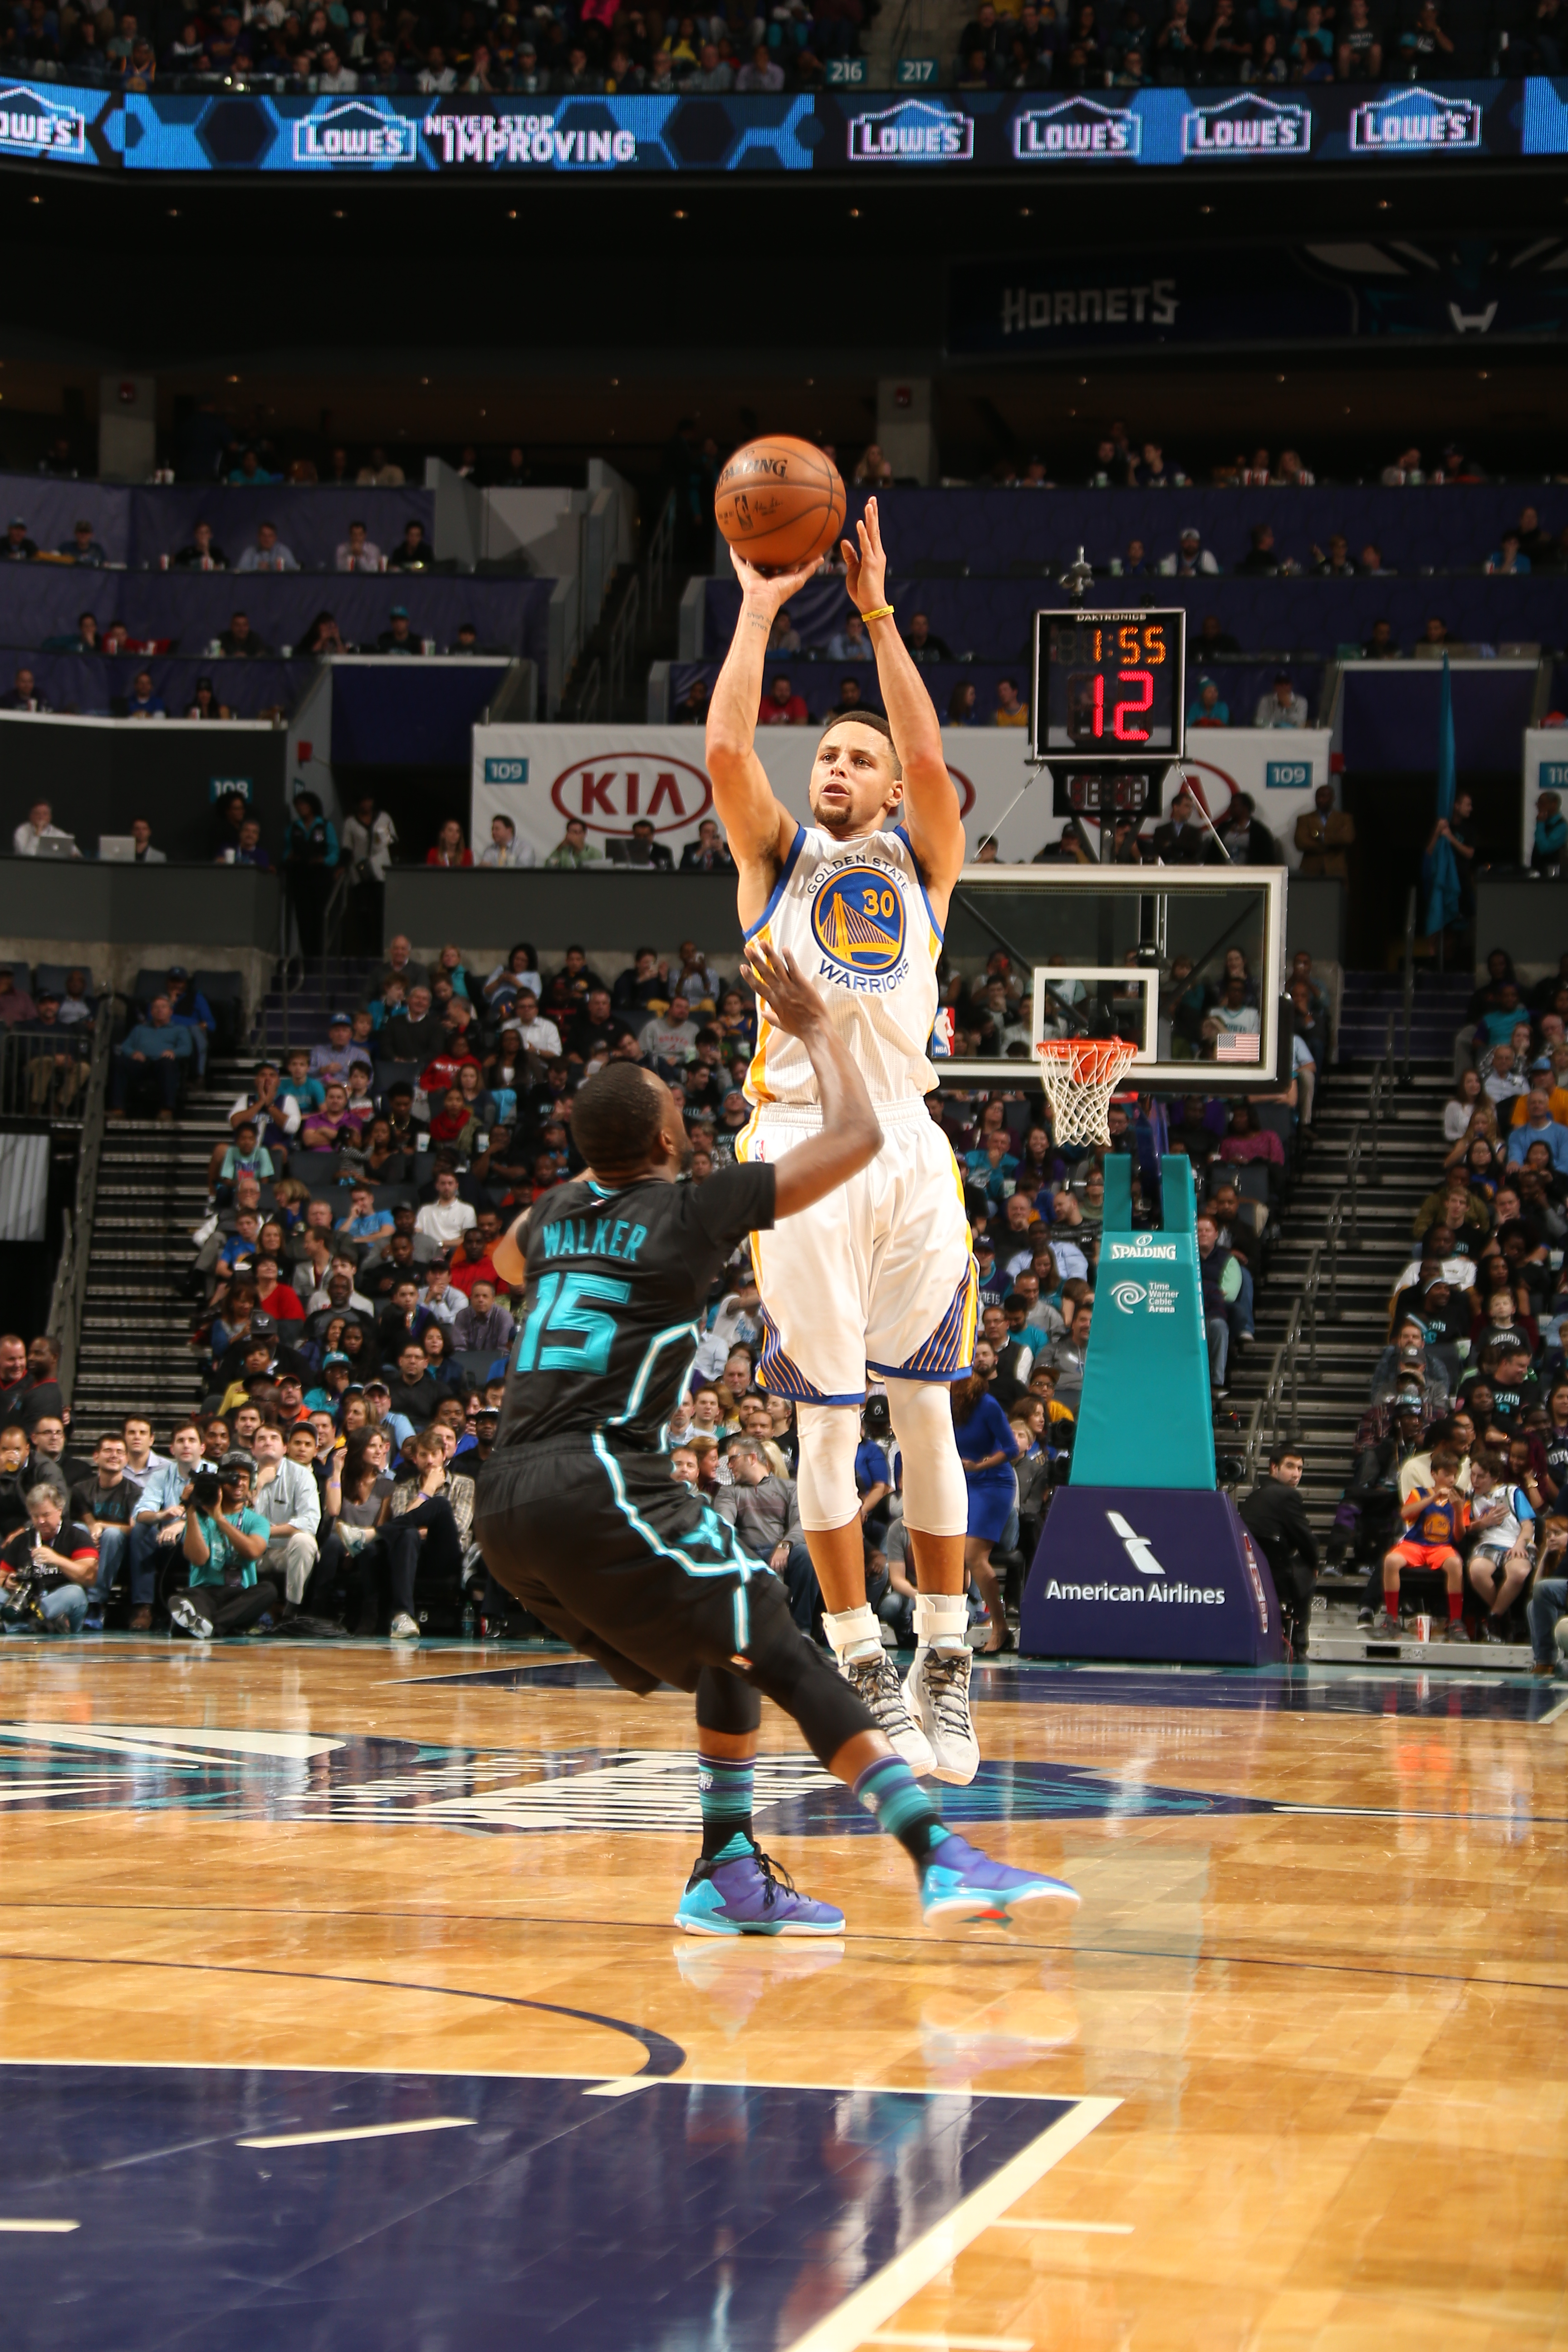 CHARLOTTE, NC - DECEMBER 2:  Stephen Curry #30 of the Golden State Warriors shoots the ball against the Charlotte Hornets on December 2, 2015 at Time Warner Cable Arena in Charlotte, North Carolina. (Photo by Kent Smith/NBAE via Getty Images)